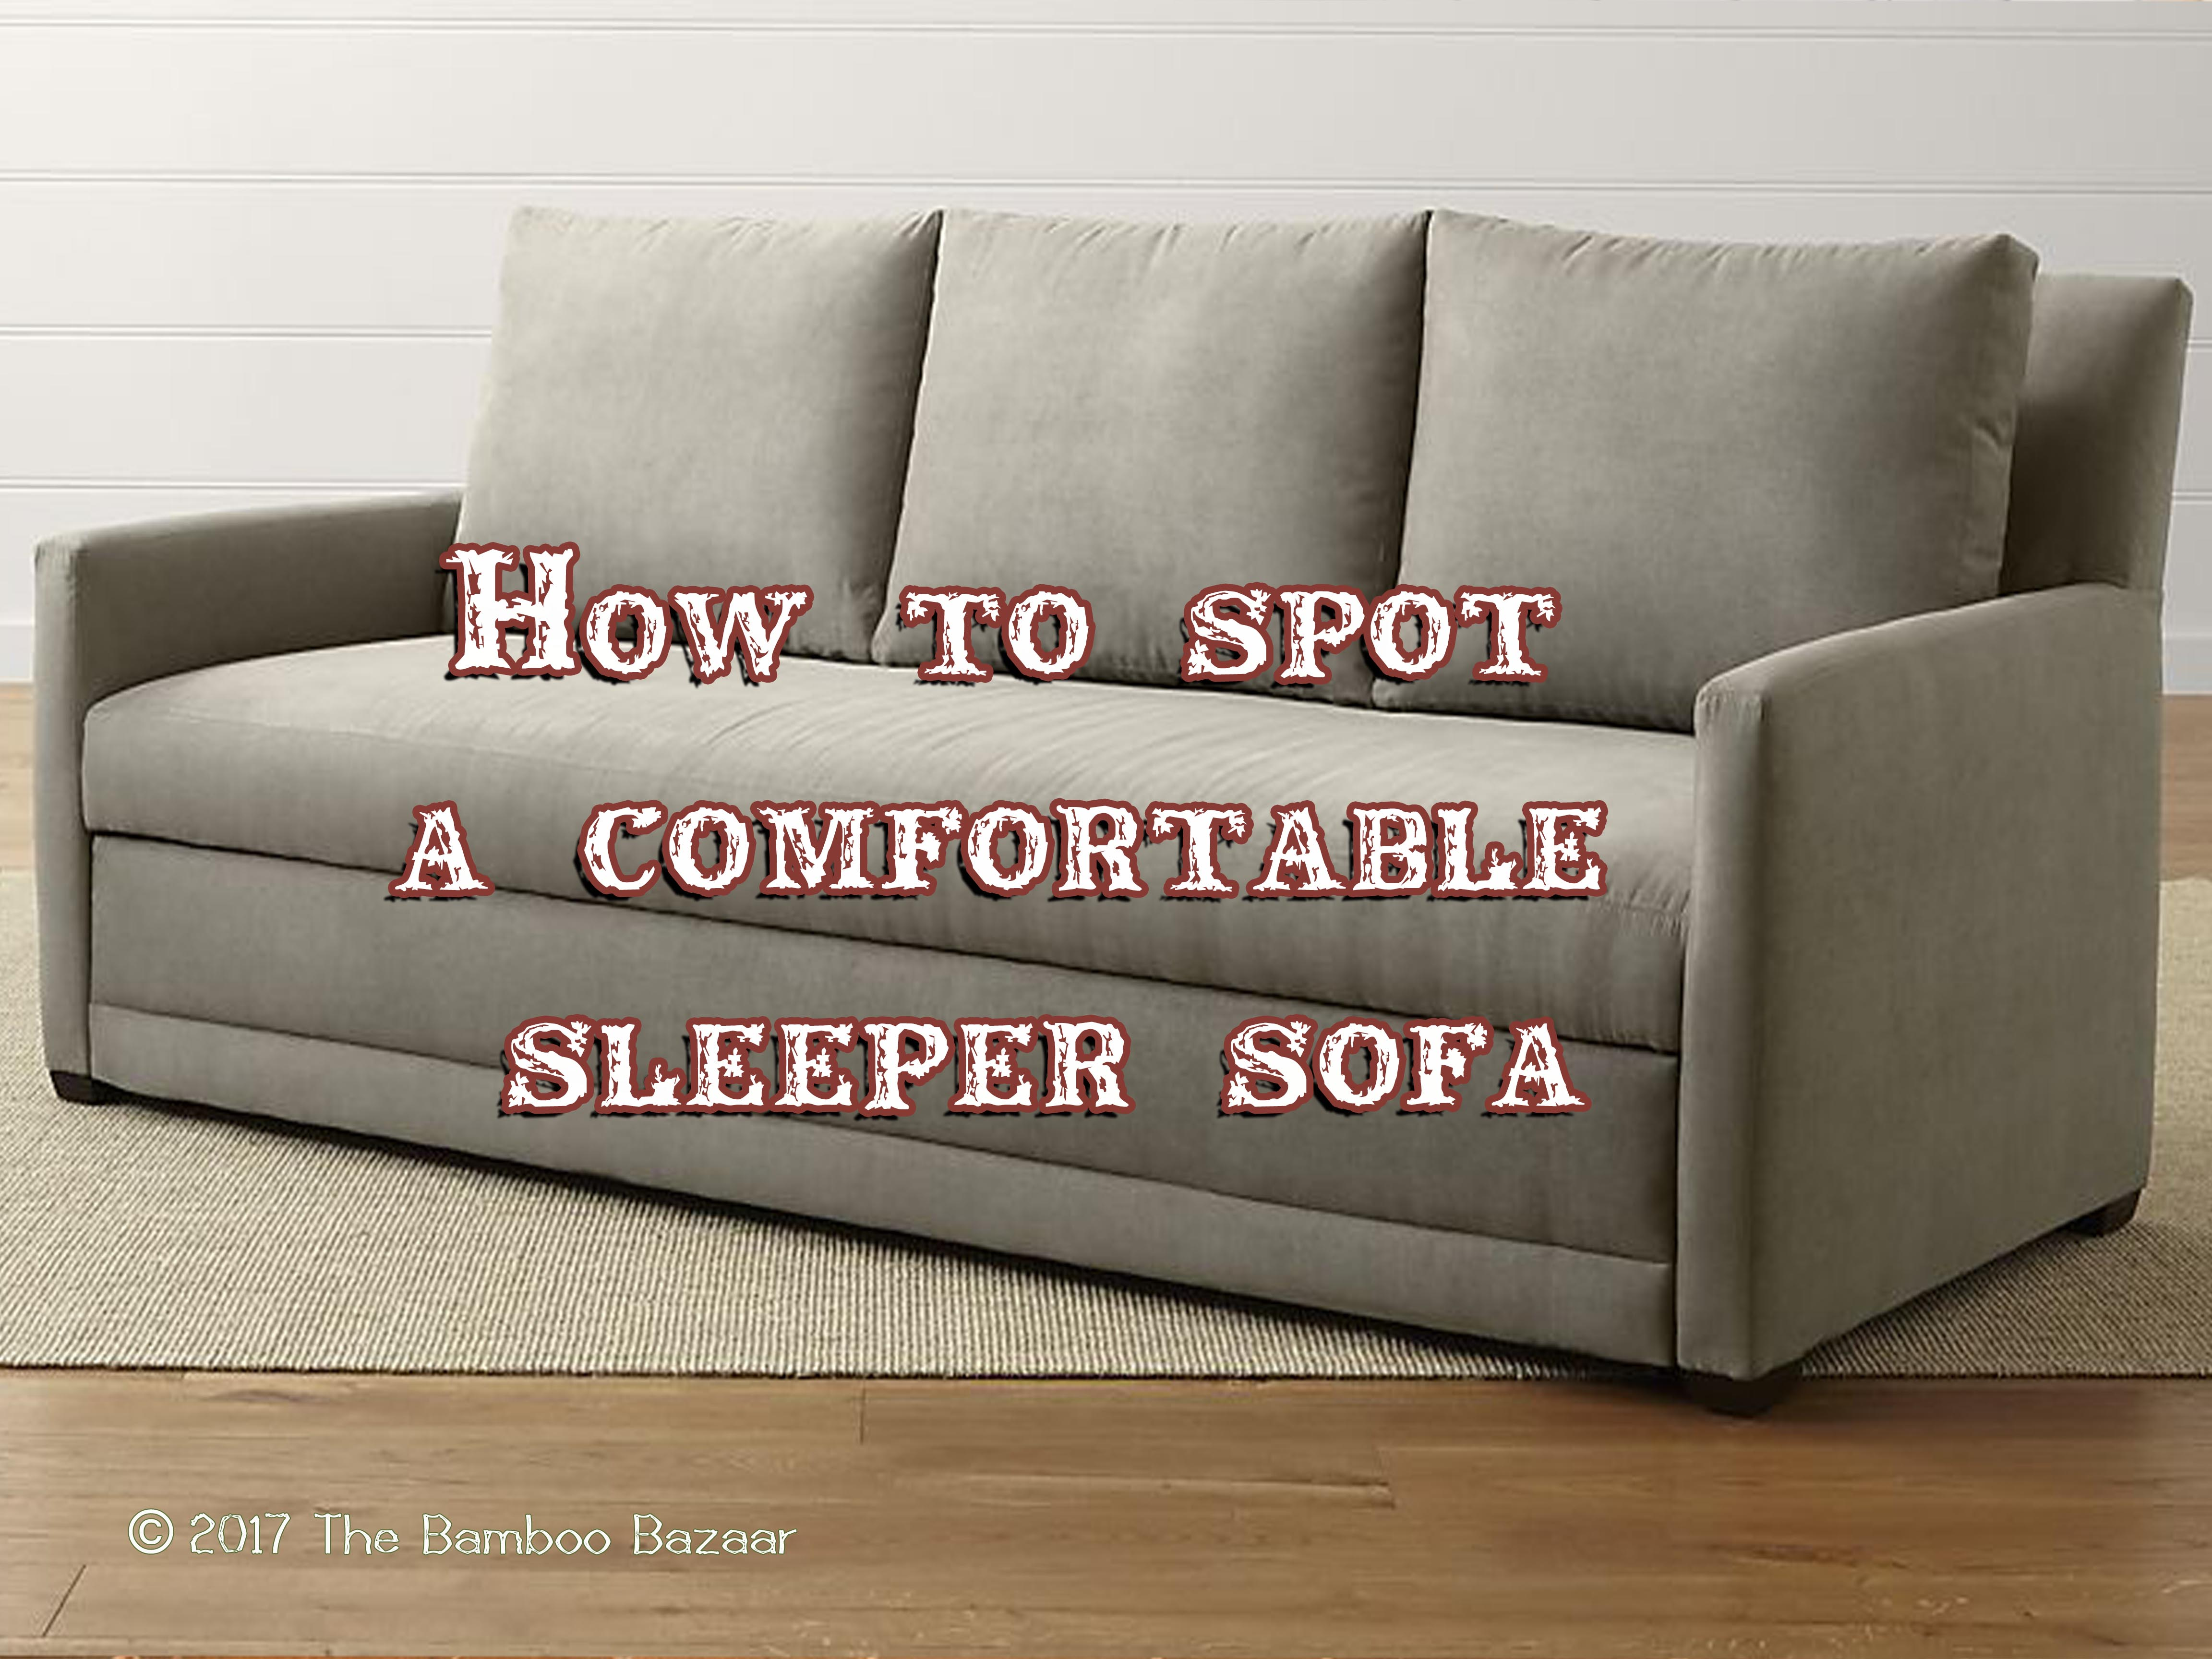 How to Spot a fortable Sleeper Sofa A Pratical Review